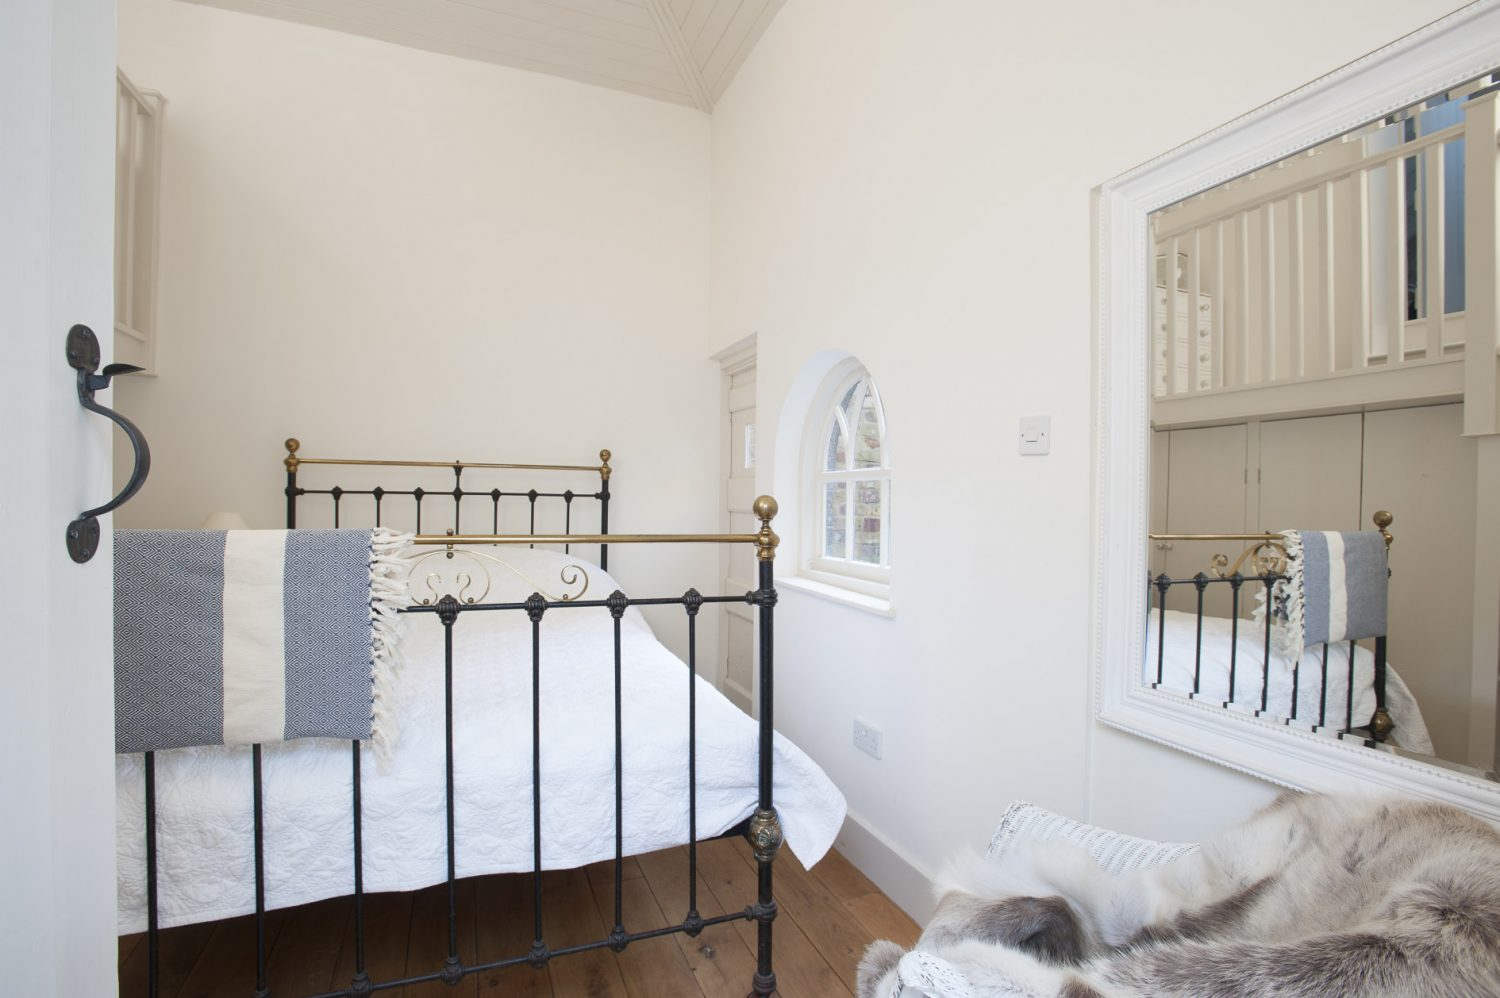 The original shed has been converted into a cosy white-on-white guest bedroom with a brass and iron bedstead